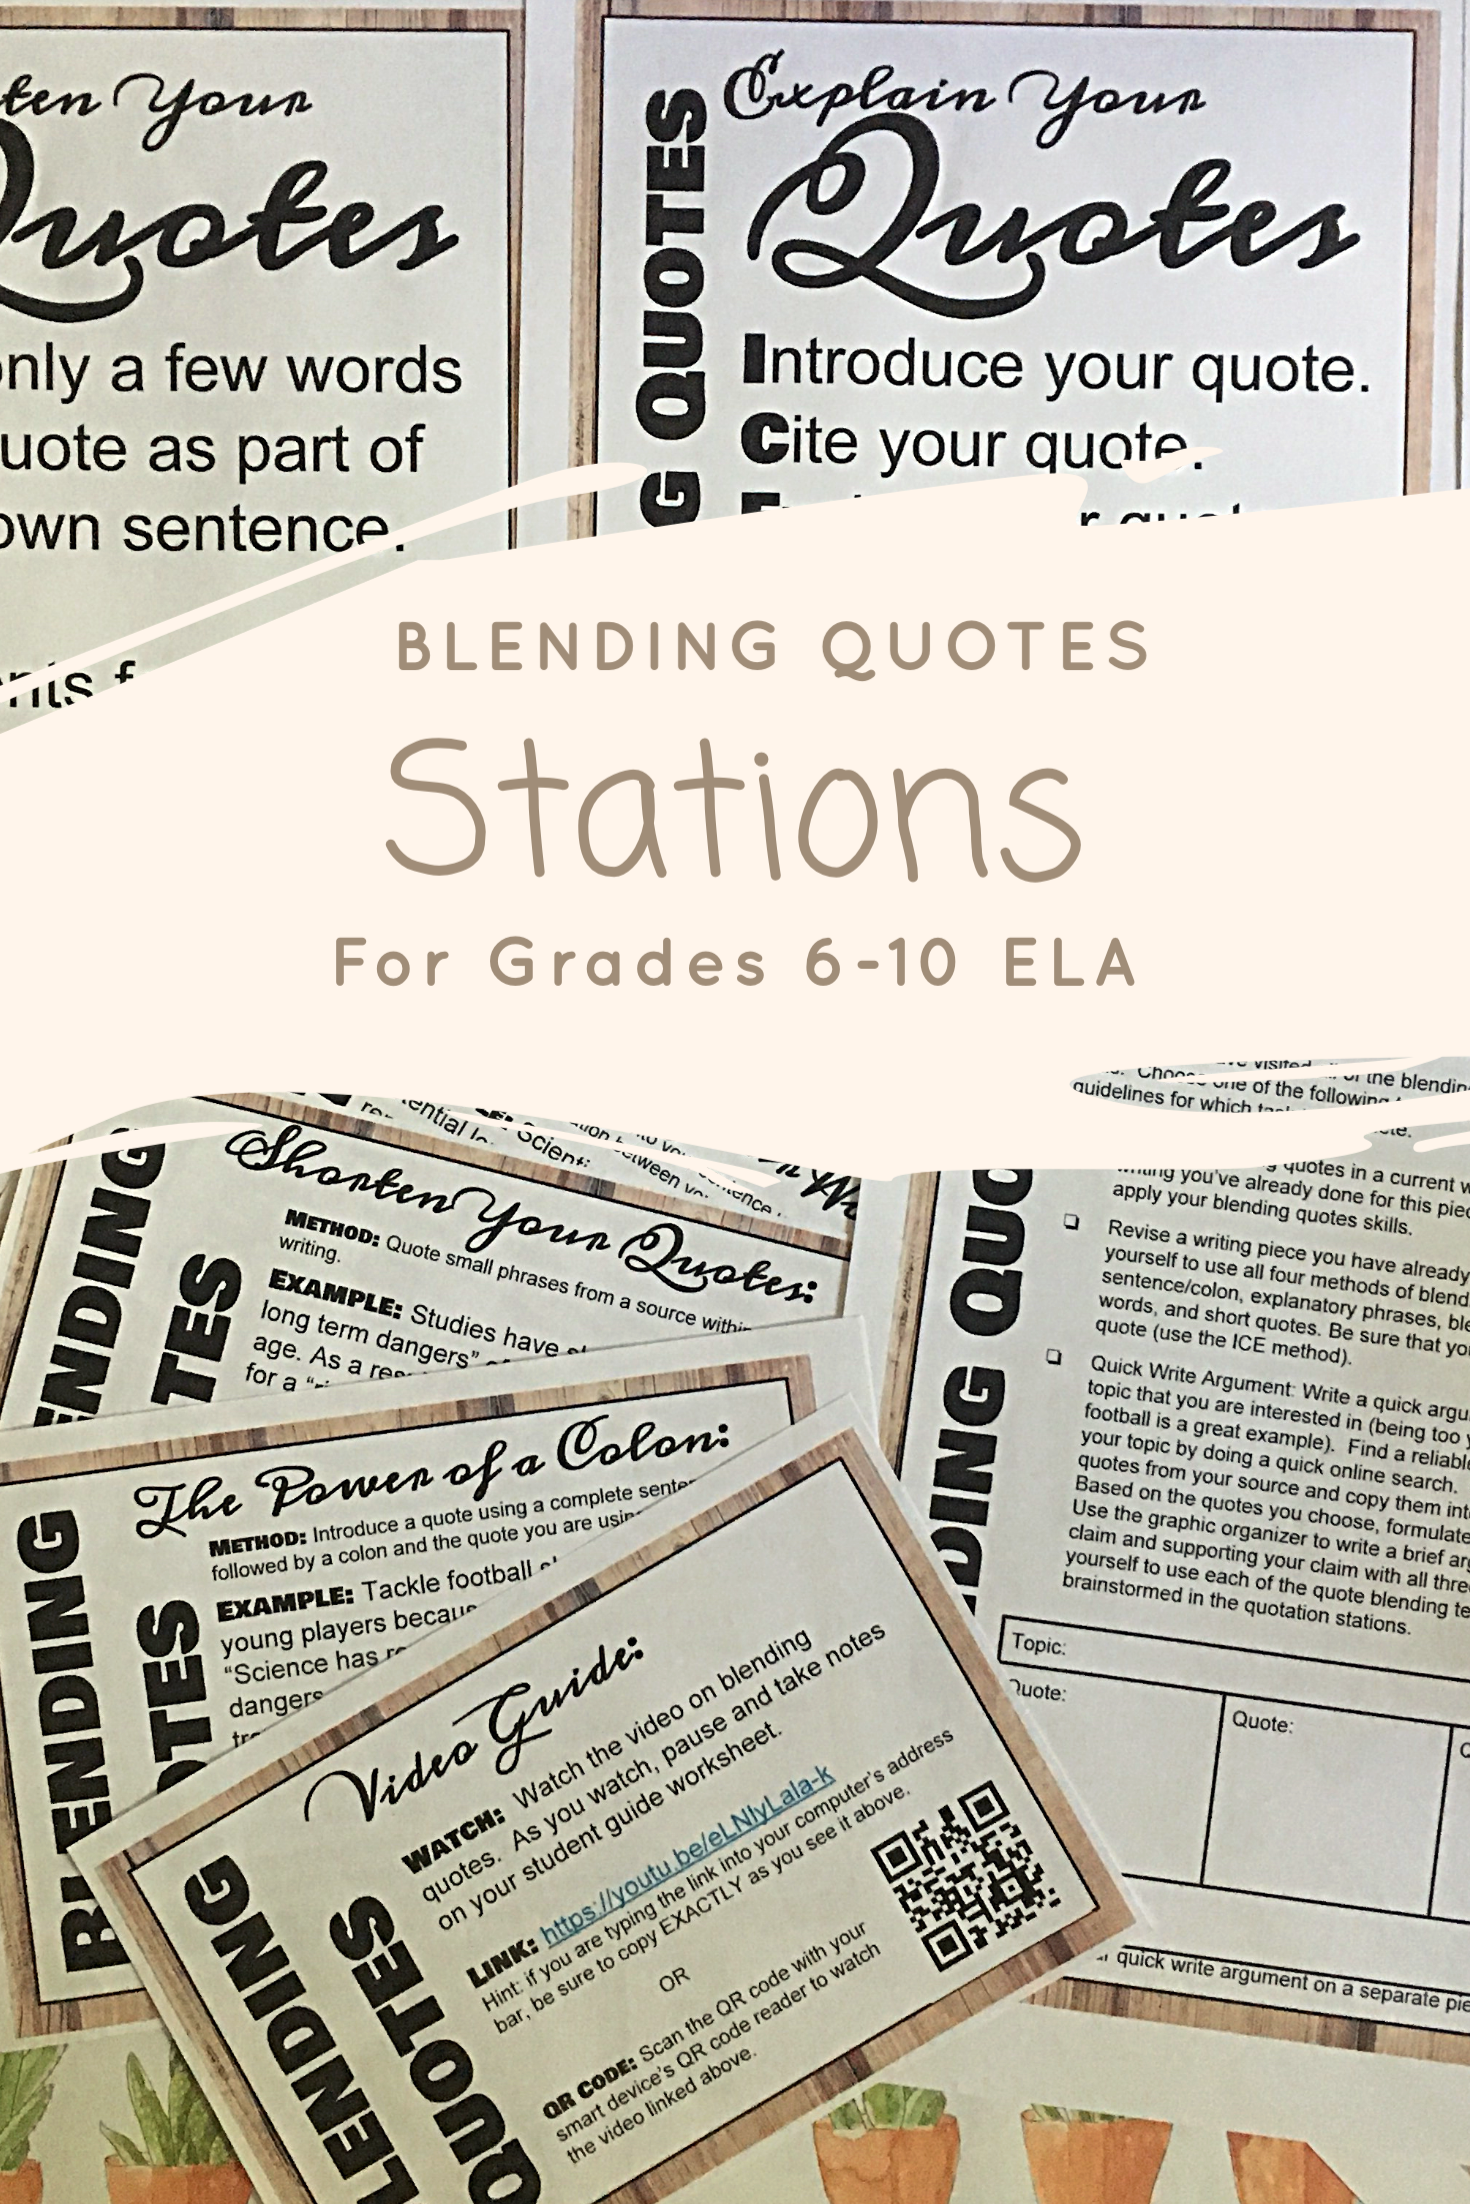 Blending Quotes (Embedding Quotes) Stations for grades 6-10 ELA ...